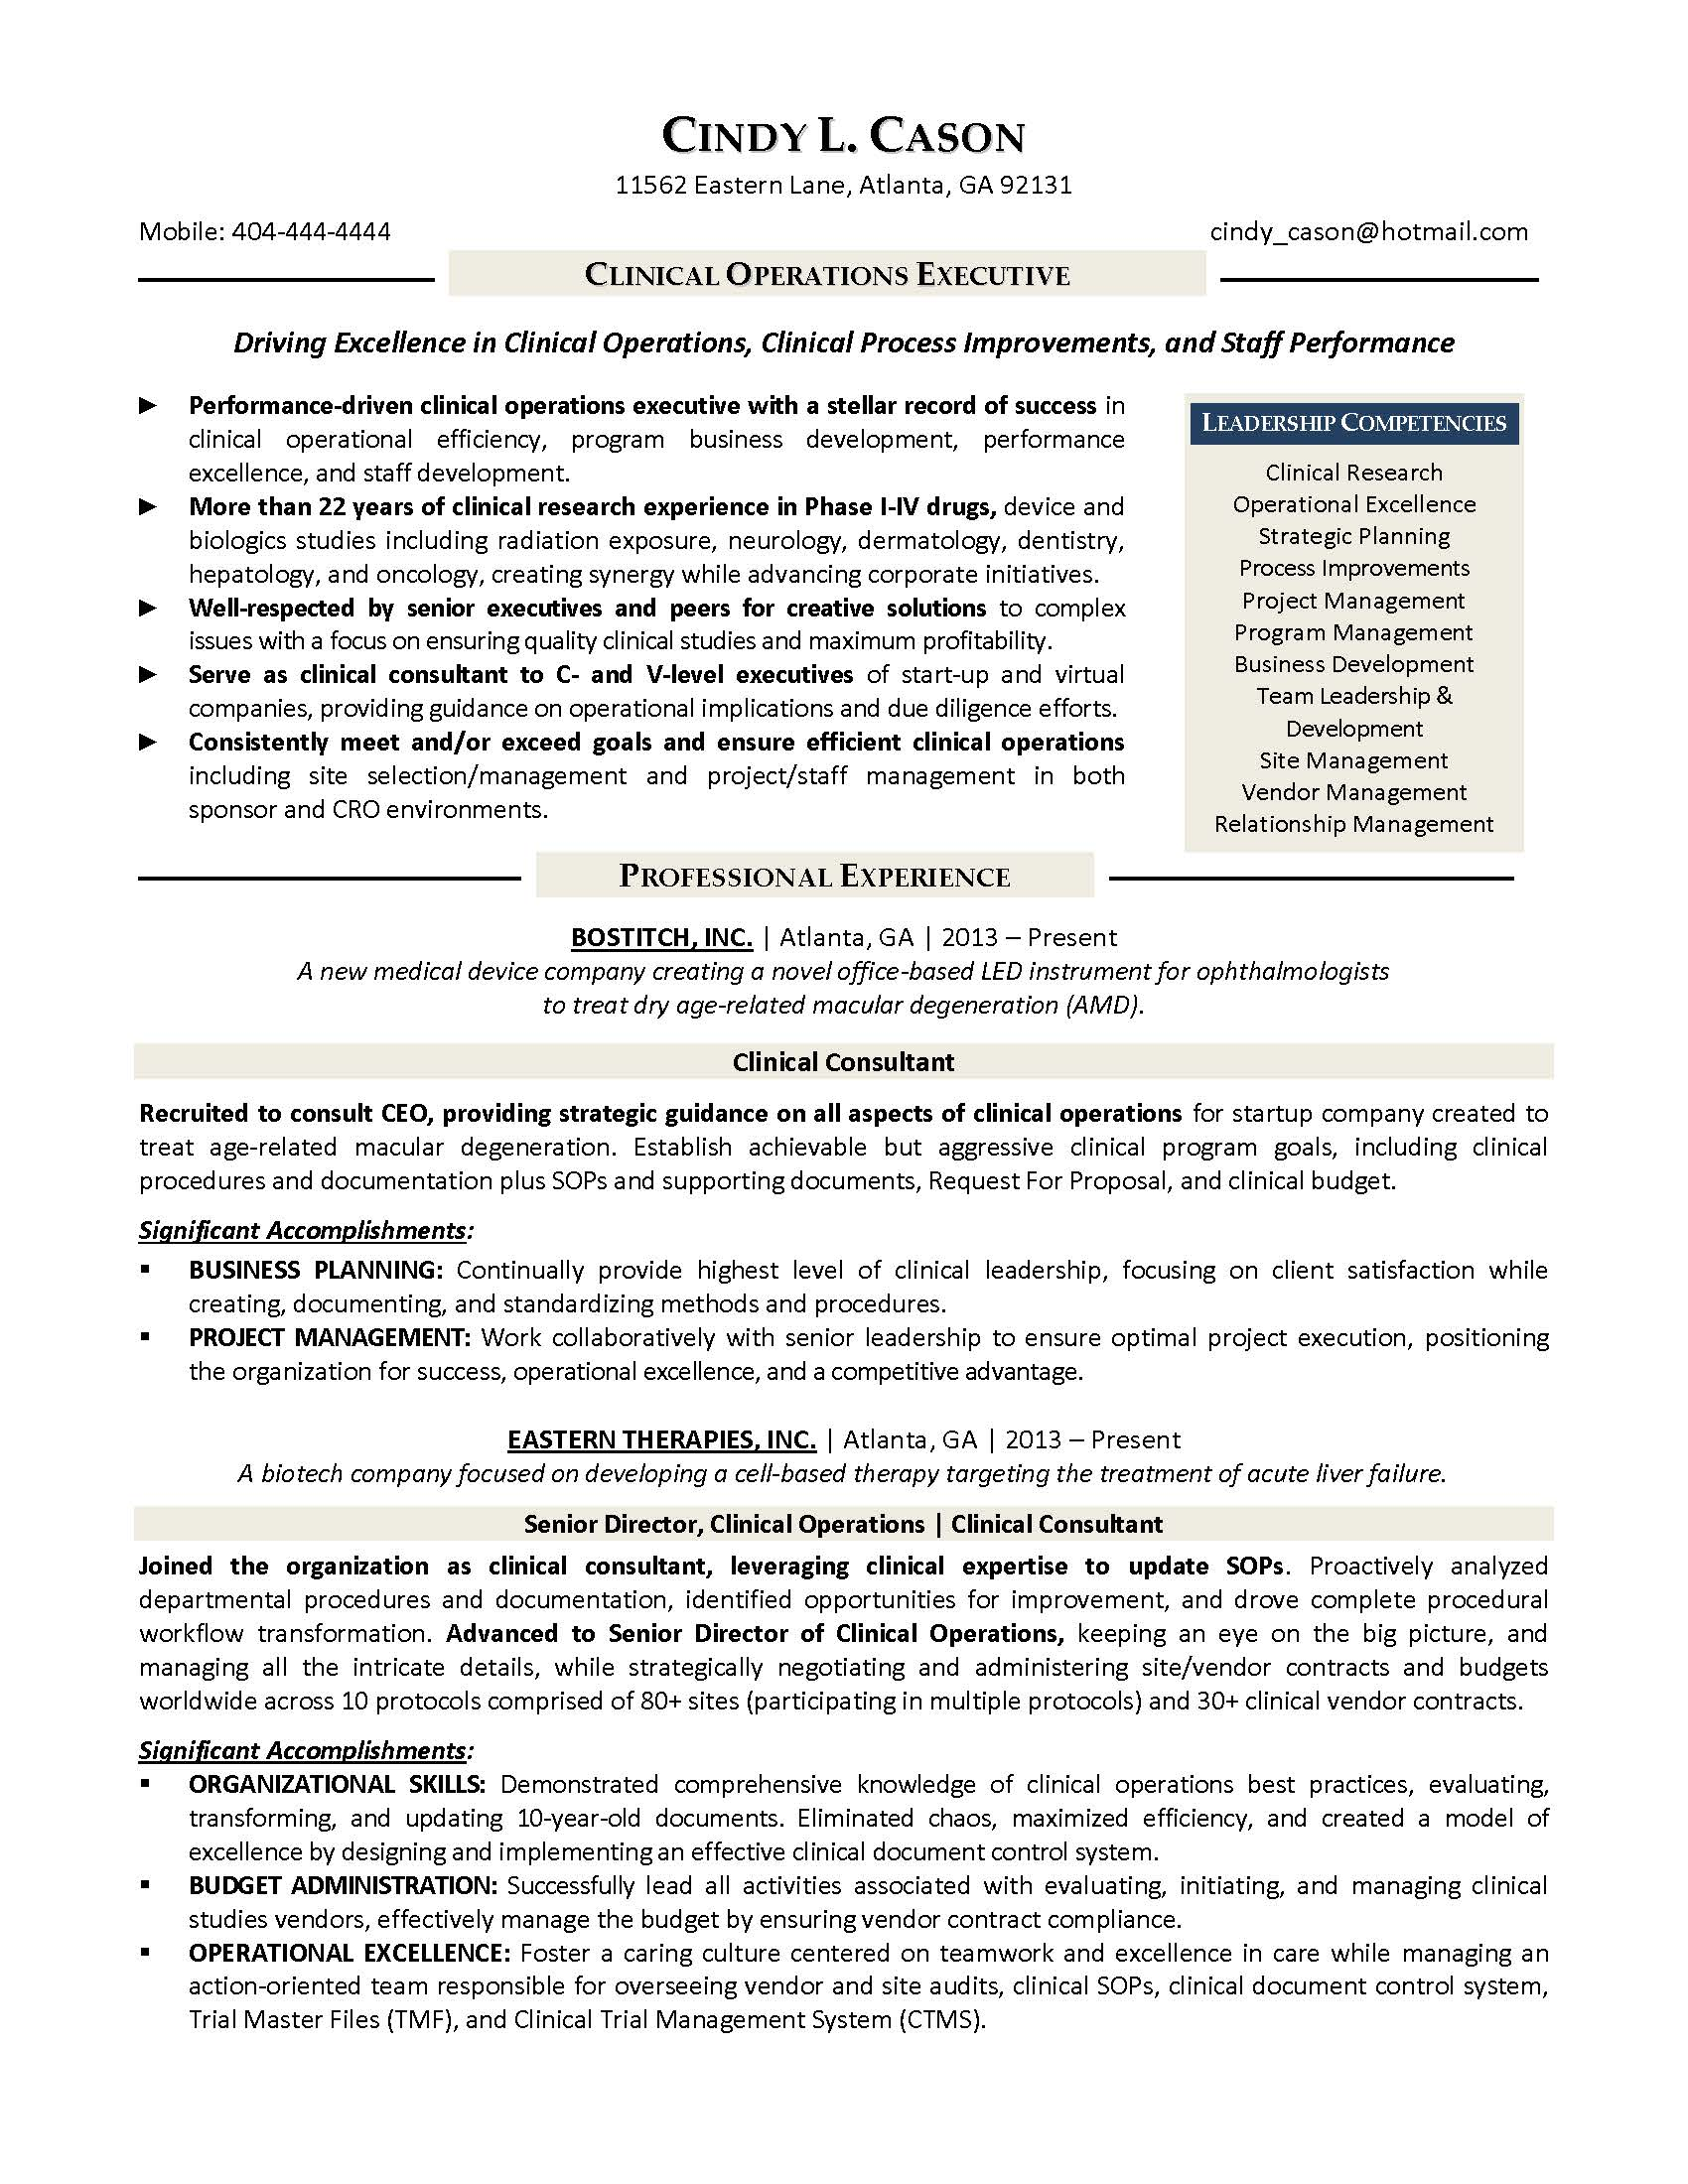 resume samples elite resume writing clinical operations executive resume sample provided by elite resume writing services